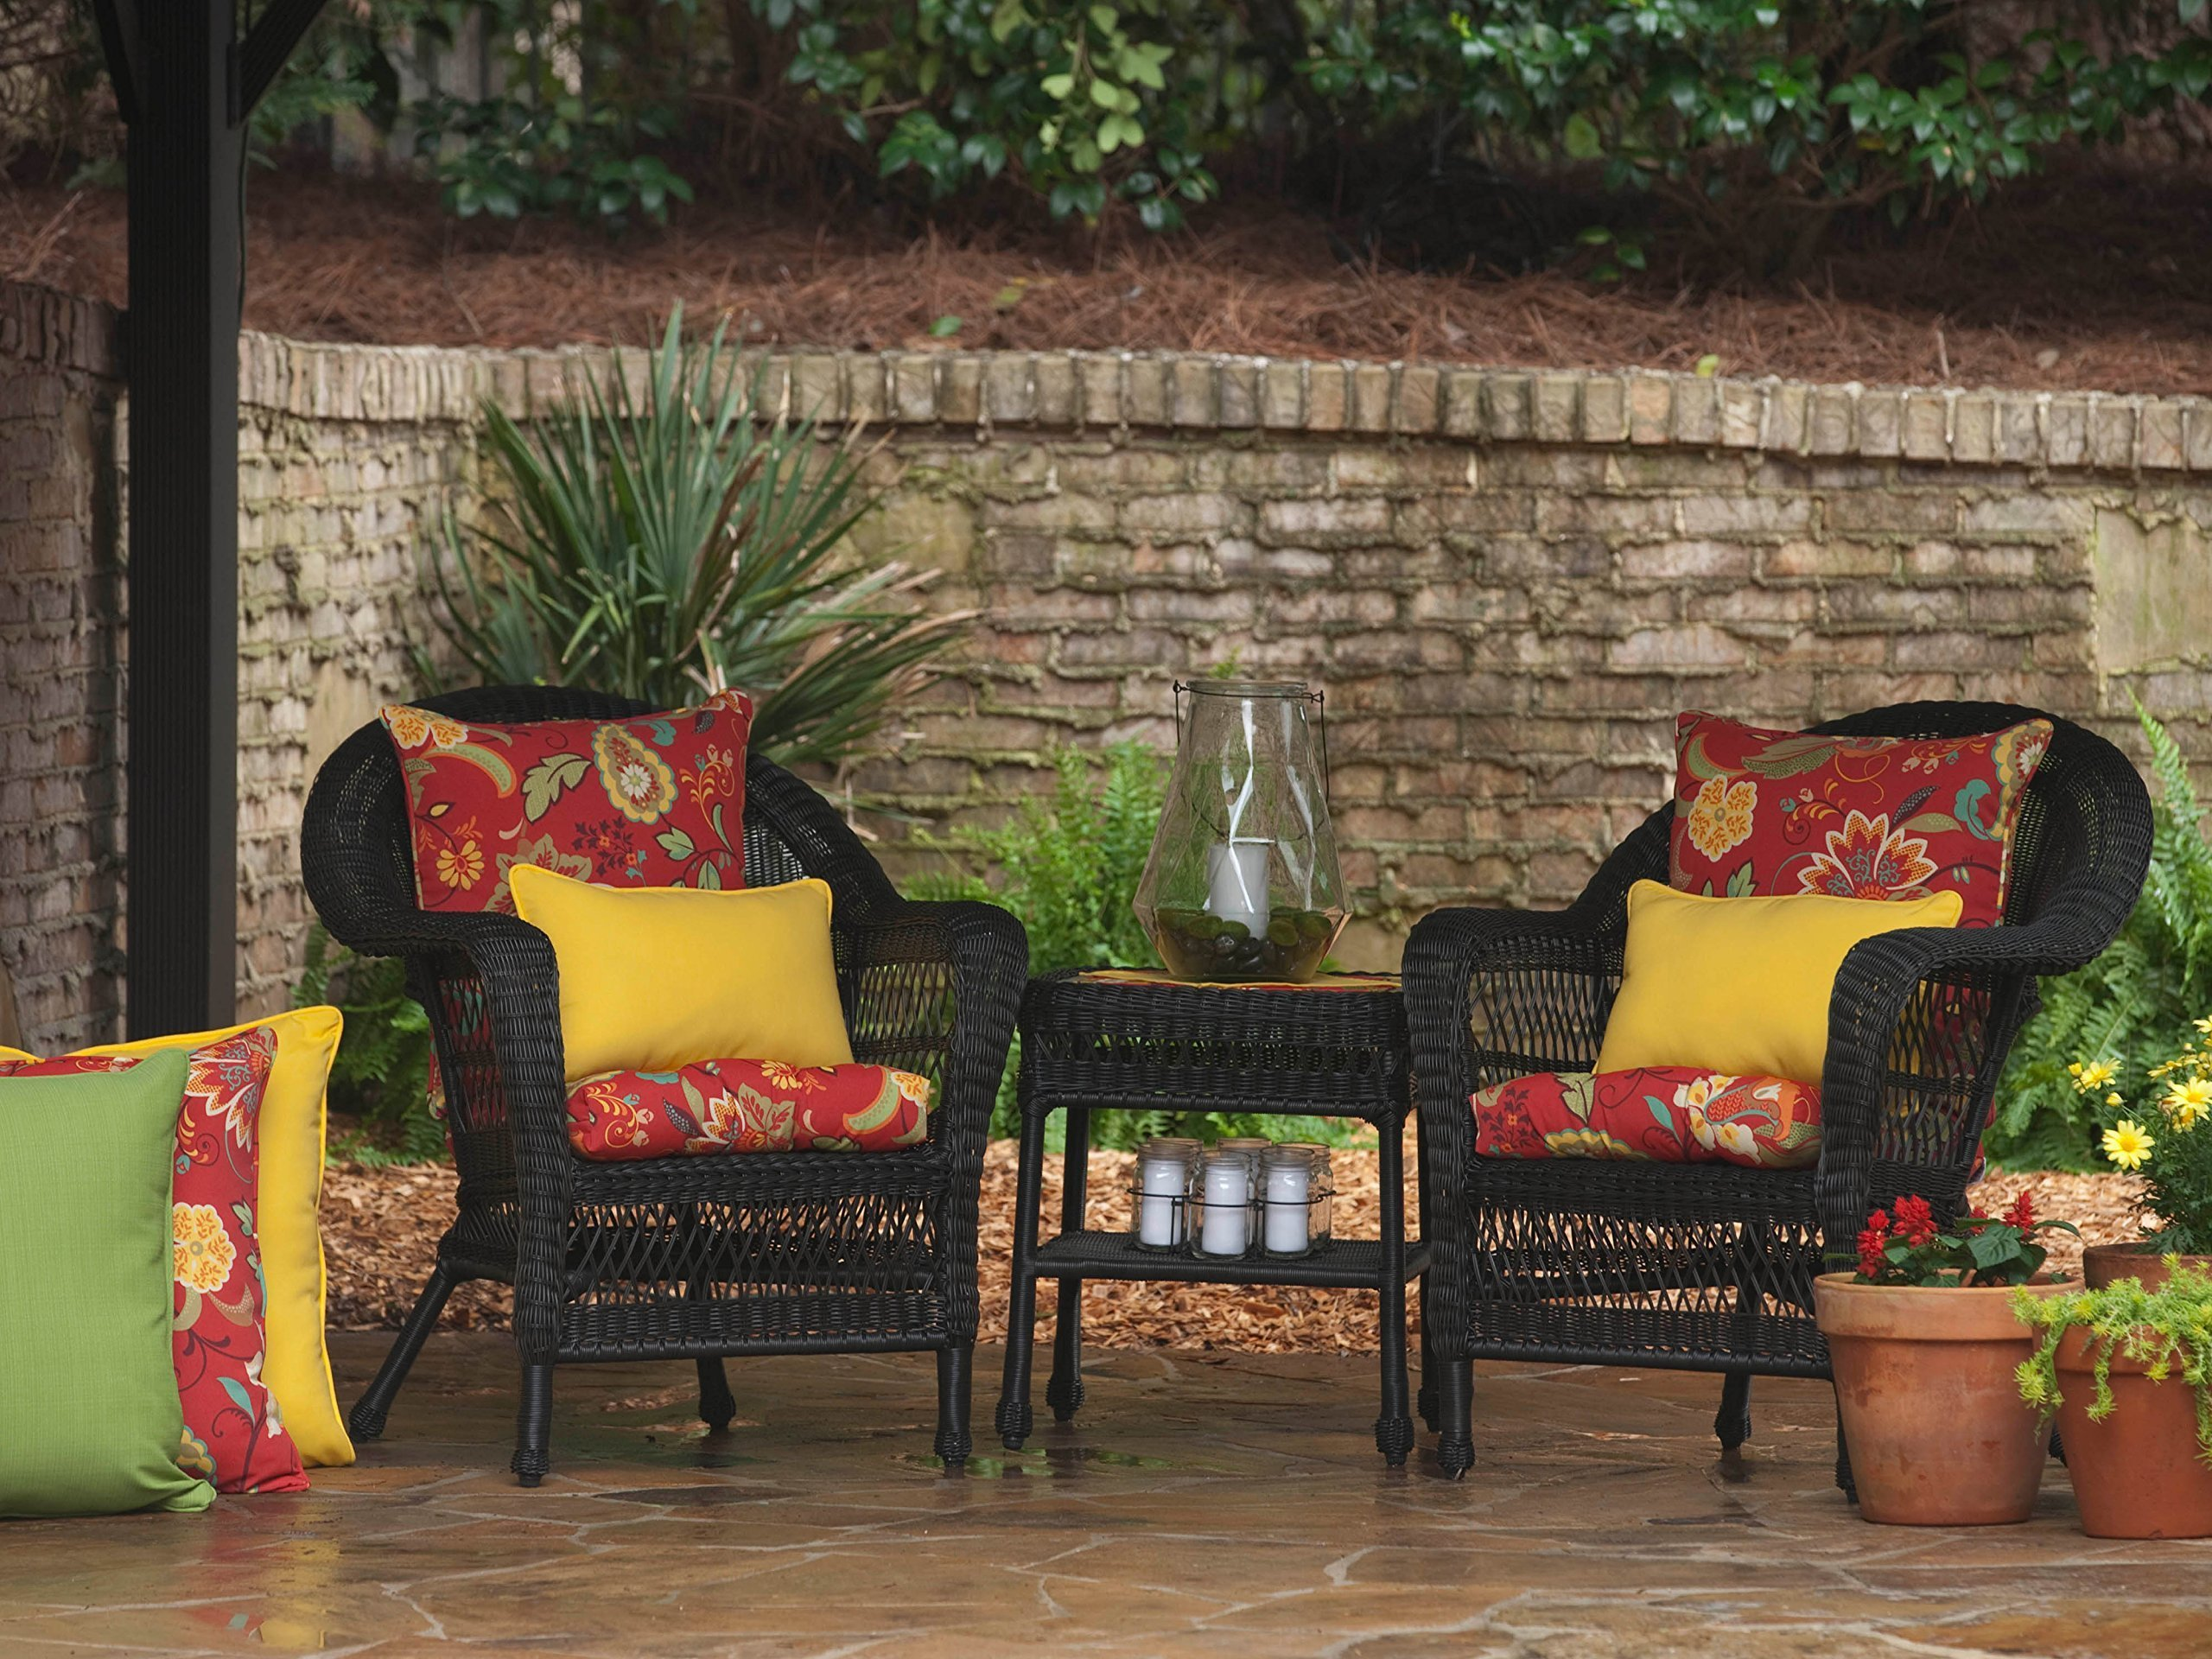 Pillow Perfect Outdoor Fresco Yellow Rectangular Throw Pillow, Set of 2 - Includes two (2) outdoor pillows, resists weather and fading in sunlight; Suitable for indoor and outdoor use Plush Fill - 100-percent polyester fiber filling Edges of outdoor pillows are trimmed with matching fabric and cord to sit perfectly on your outdoor patio furniture - living-room-soft-furnishings, living-room, decorative-pillows - 91Wr8UFq6GL -